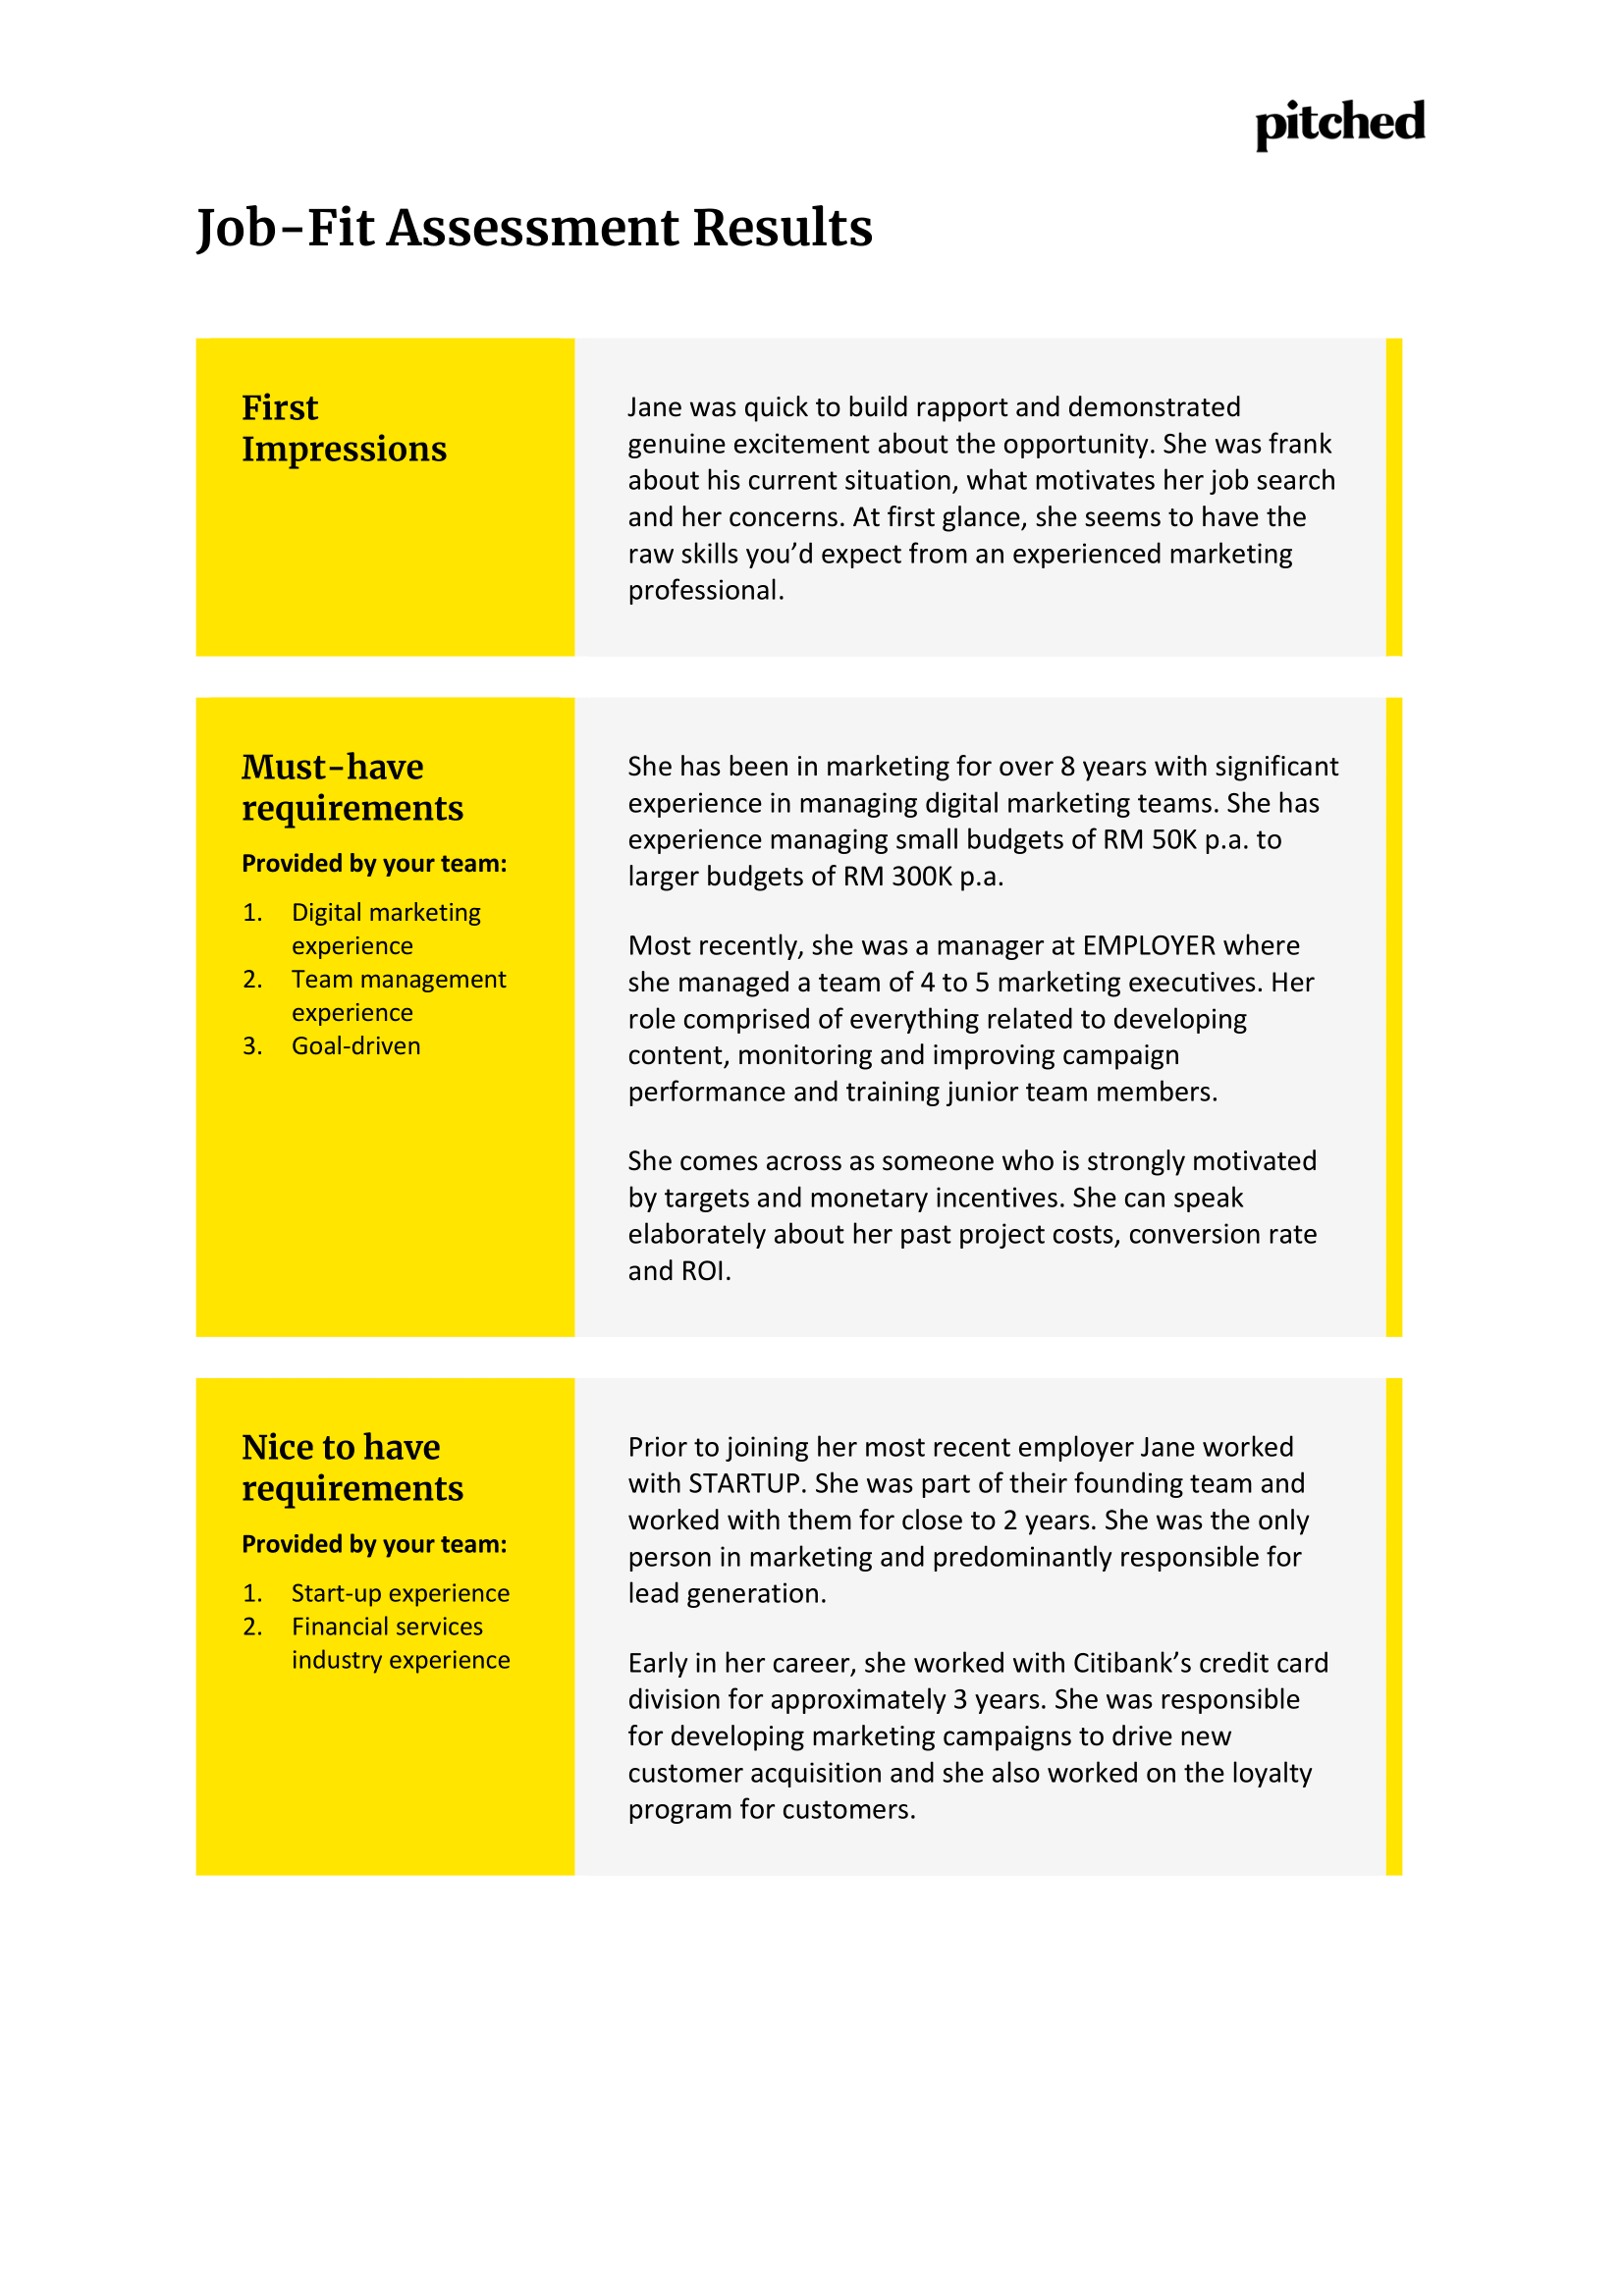 Pitched Template Candidate Profile-2.png